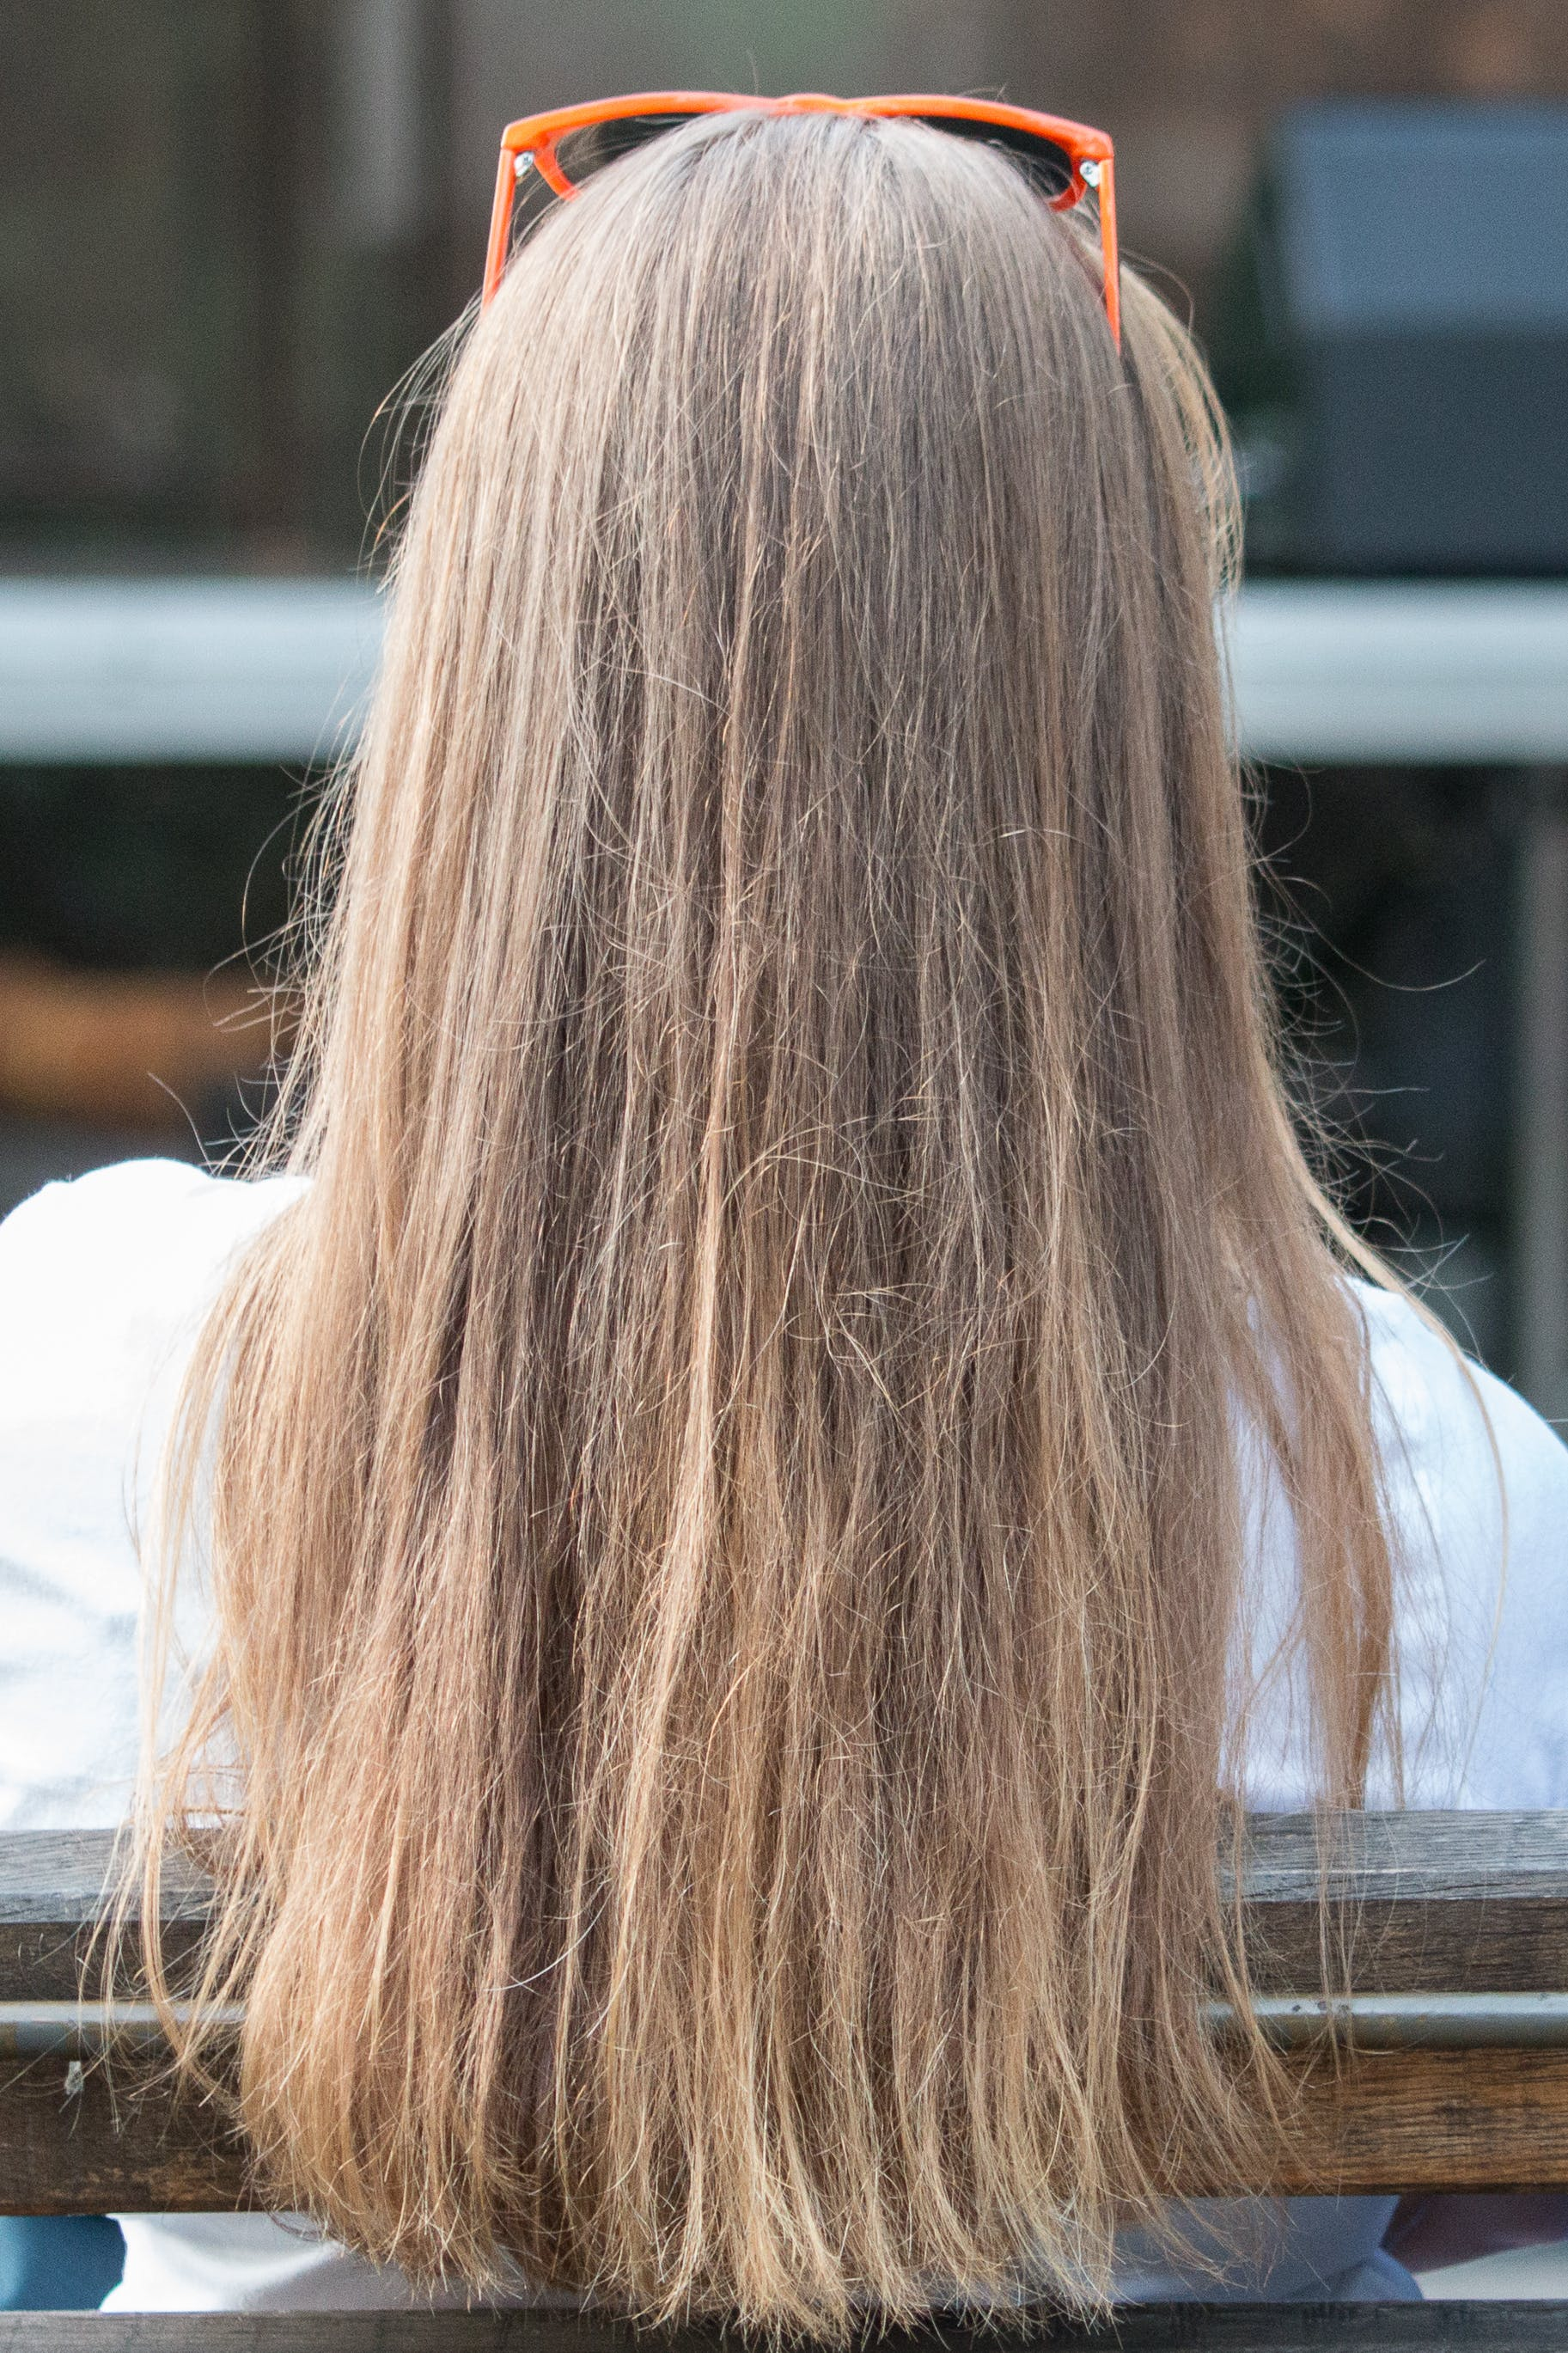 Free stock photo of hair